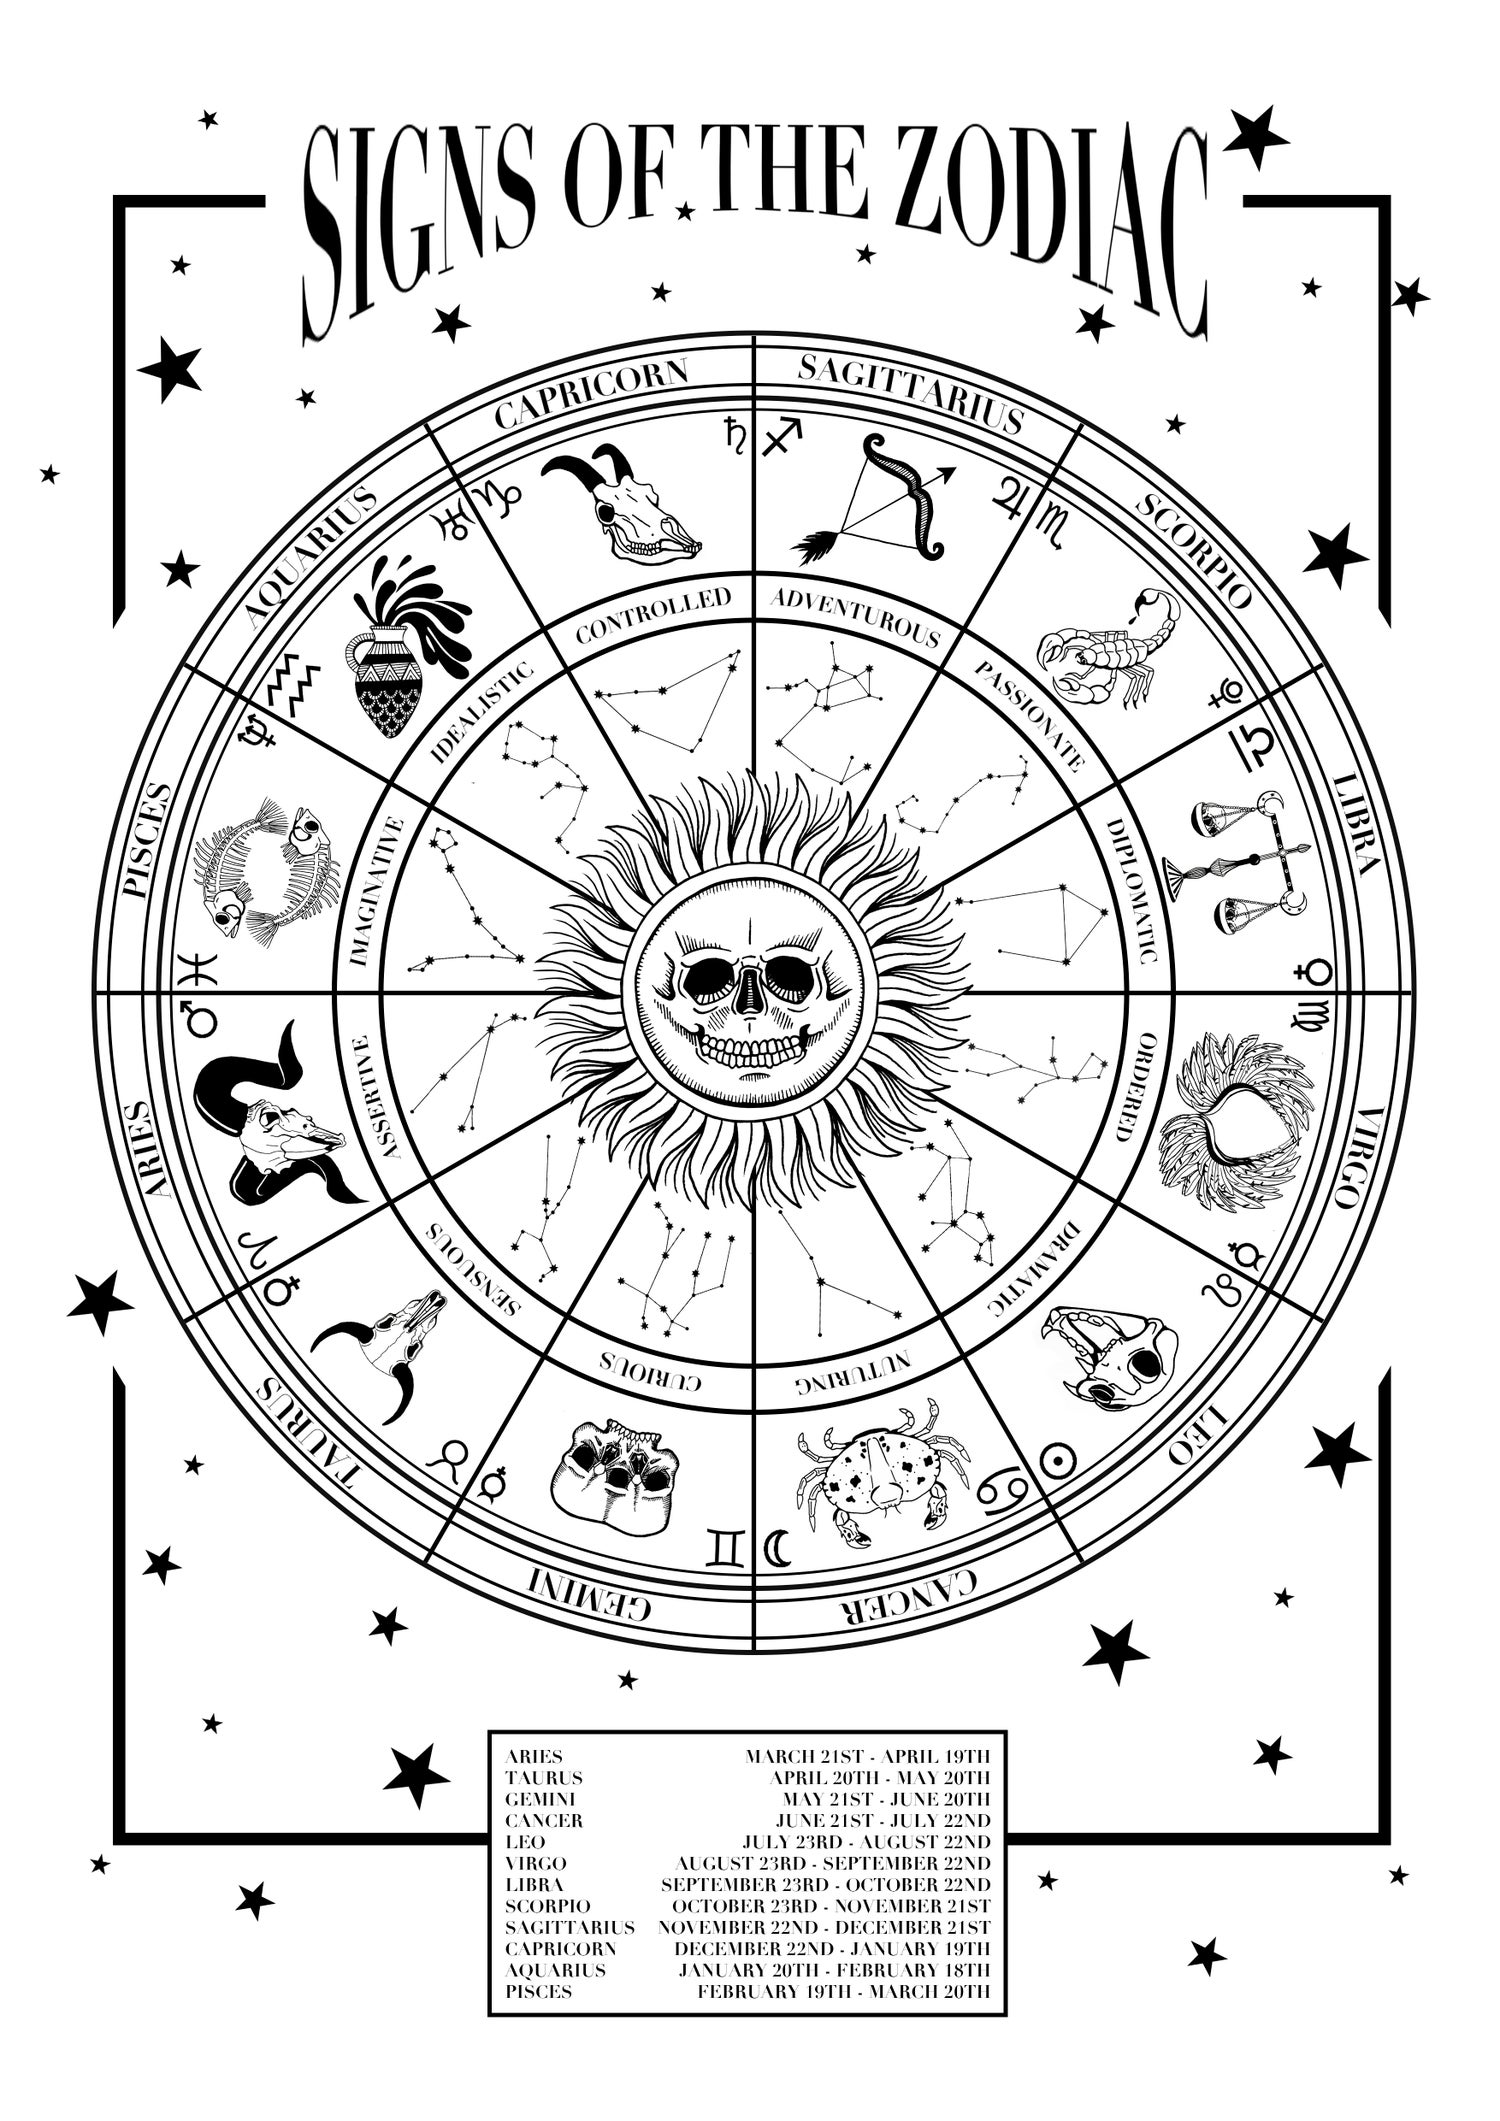 Image of Signs of the Zodiac